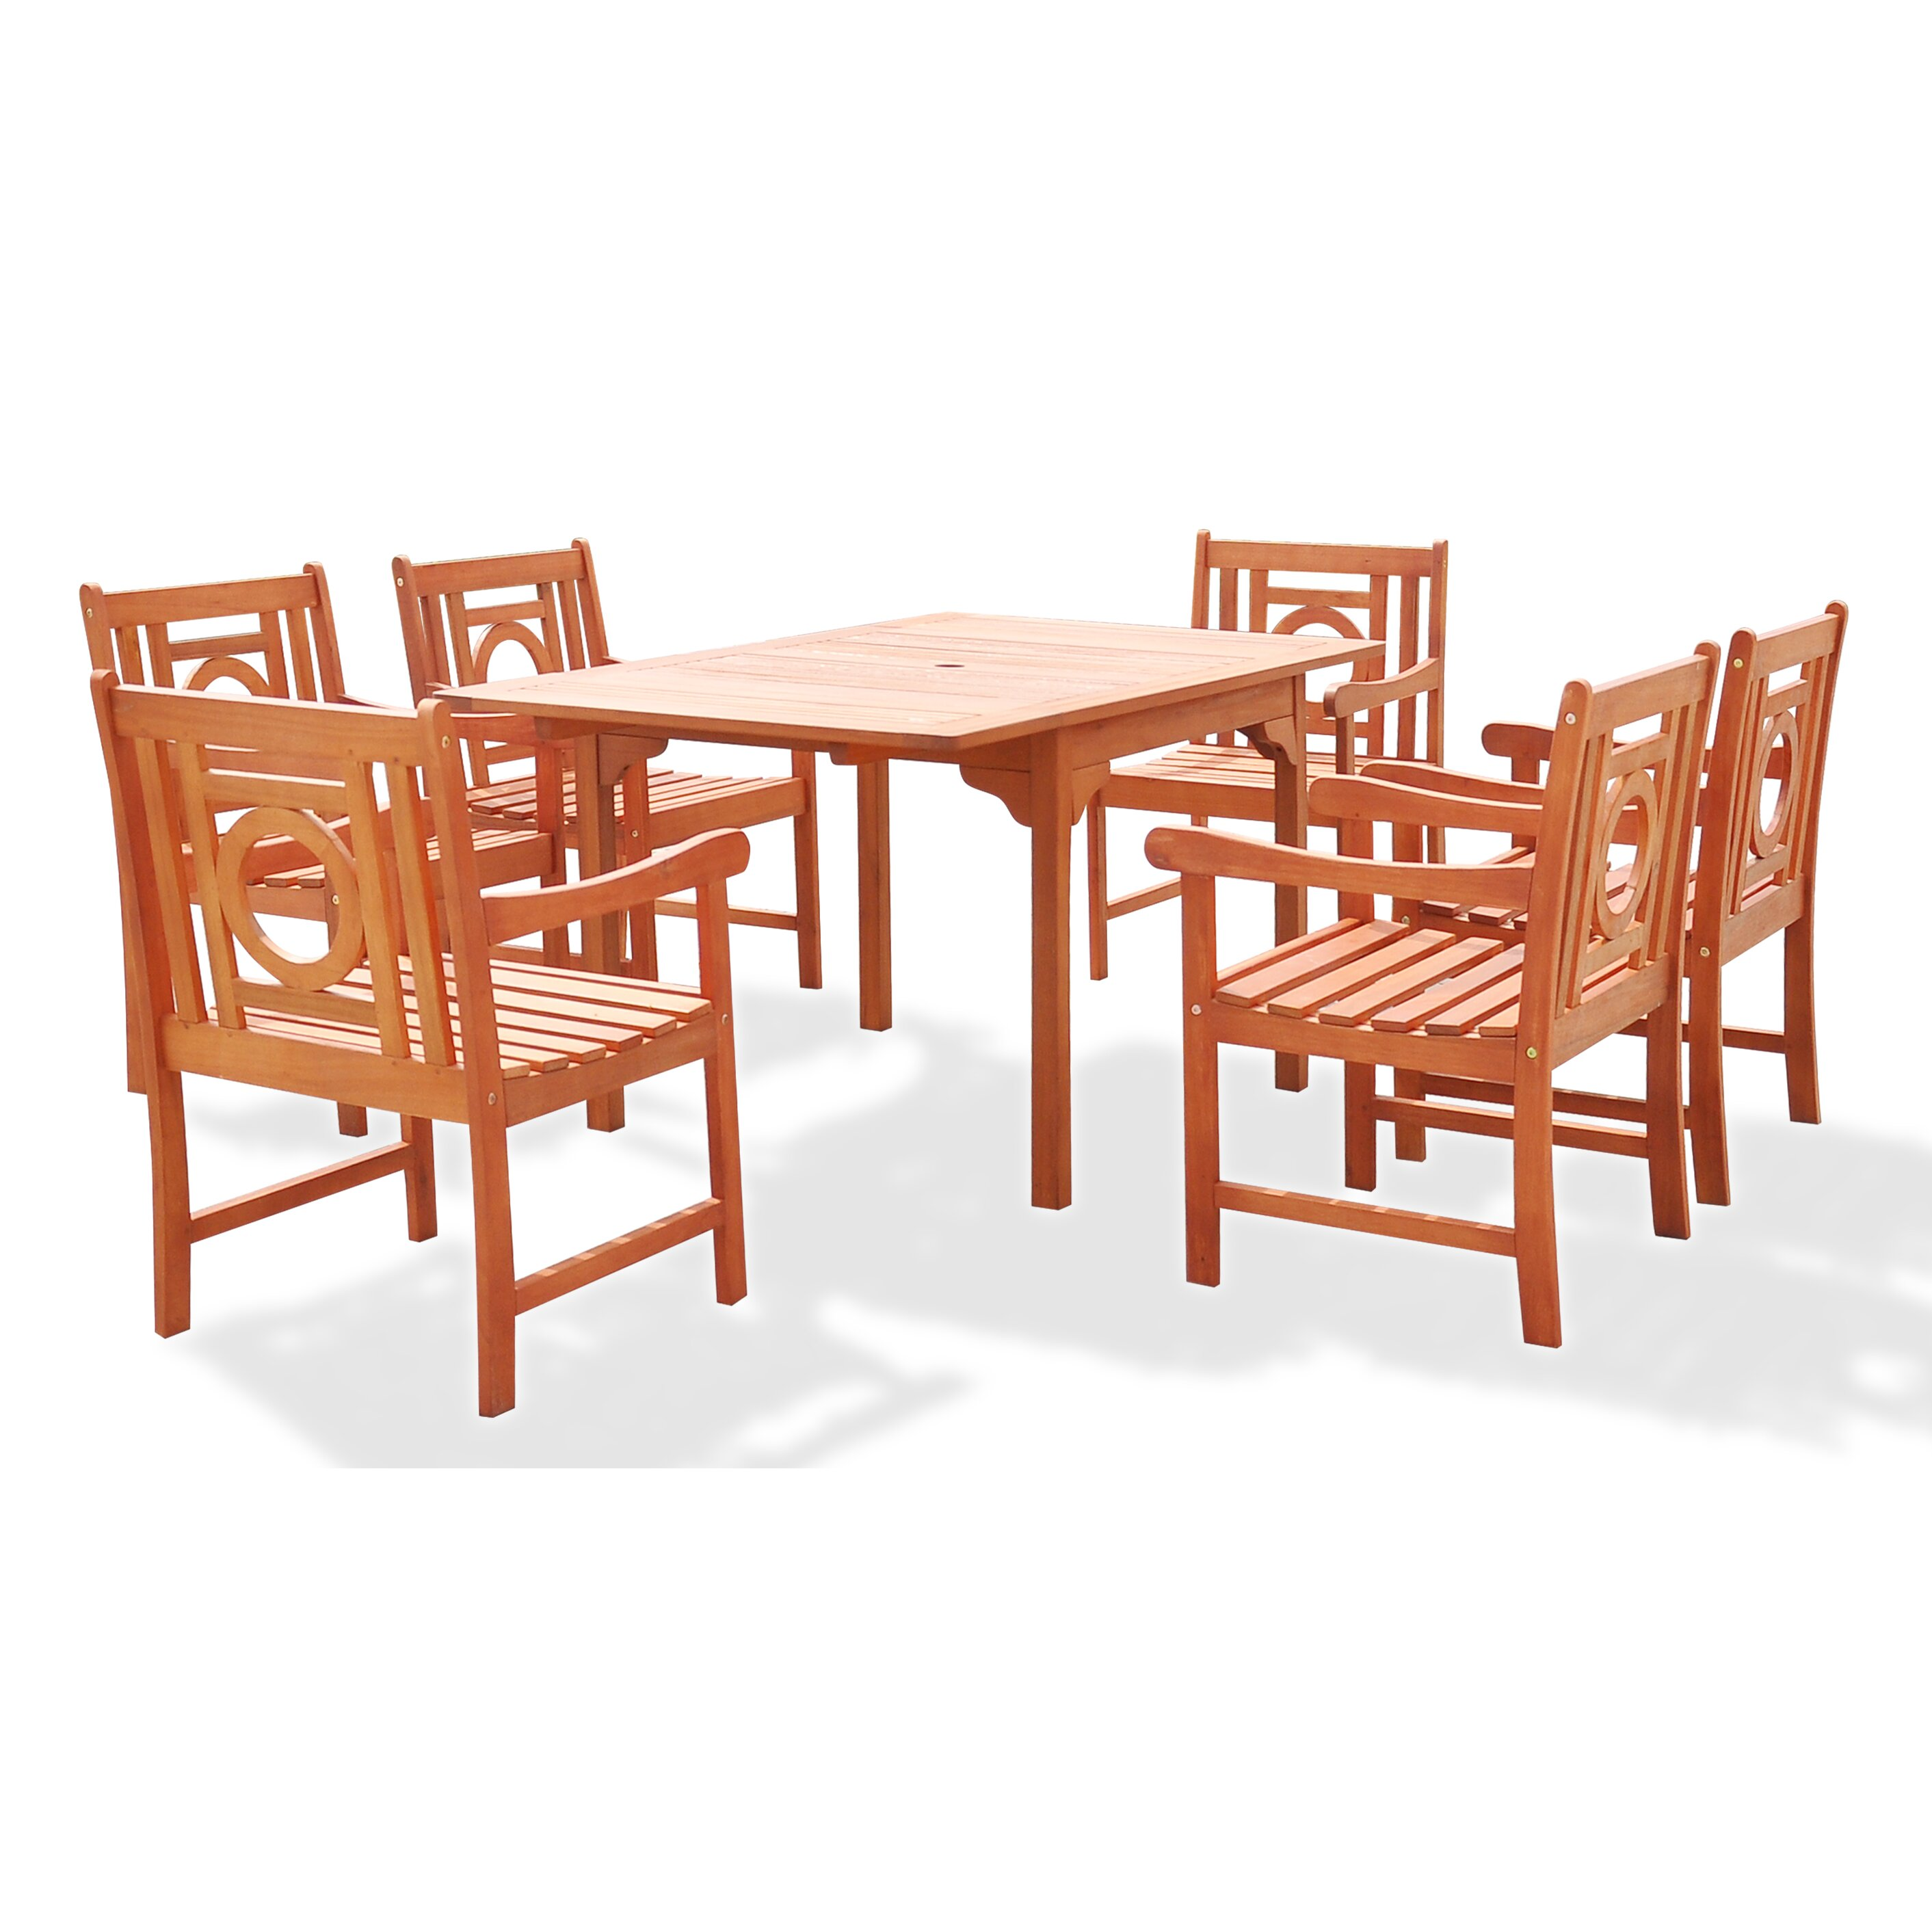 Breakwater bay blythe 7 piece dining set wayfair for 7 piece dining set